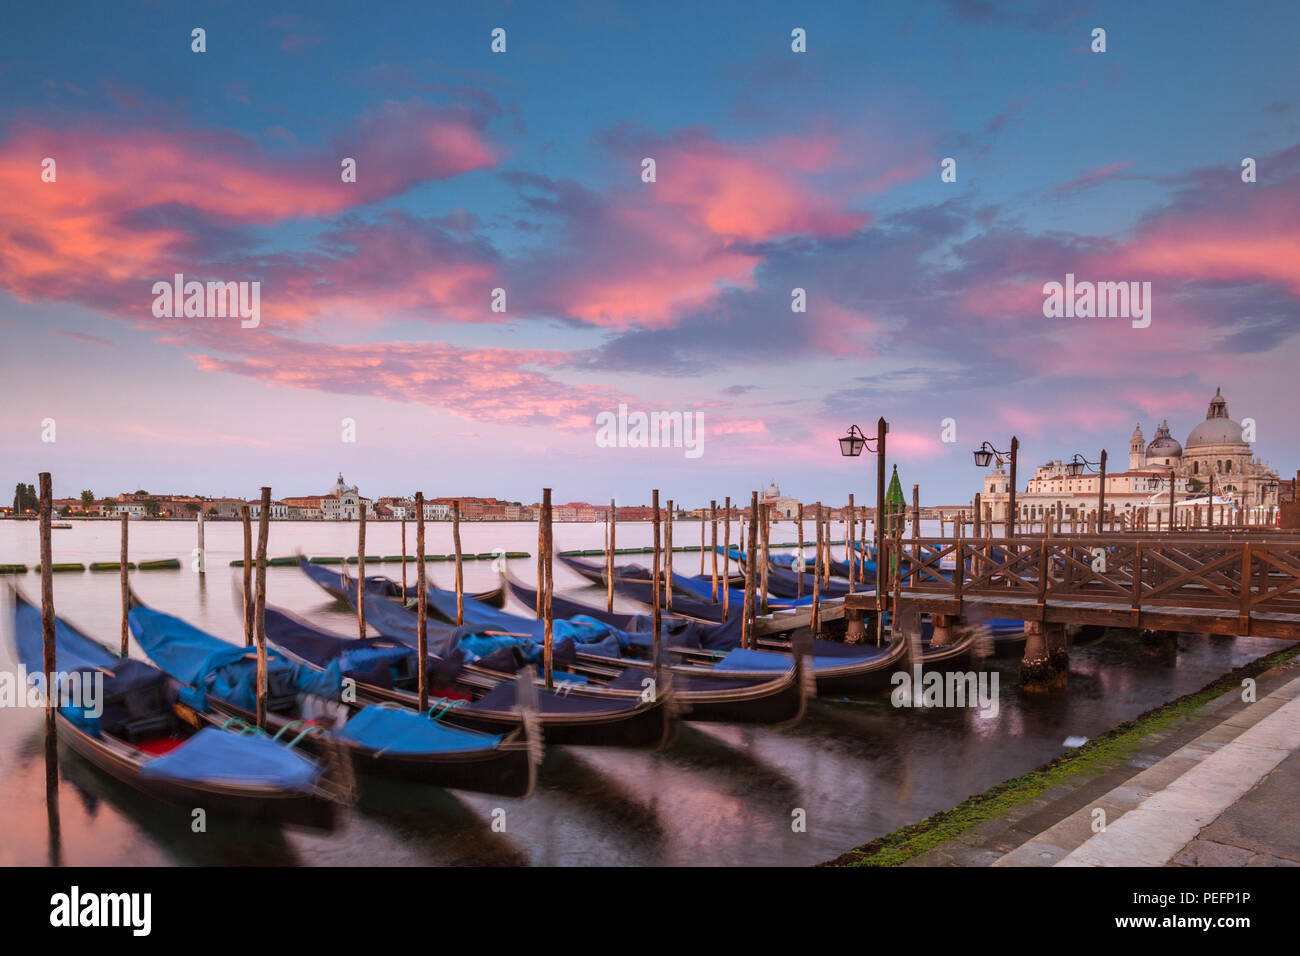 Gondolas parkked at sunset in Venice, Italy Stock Photo